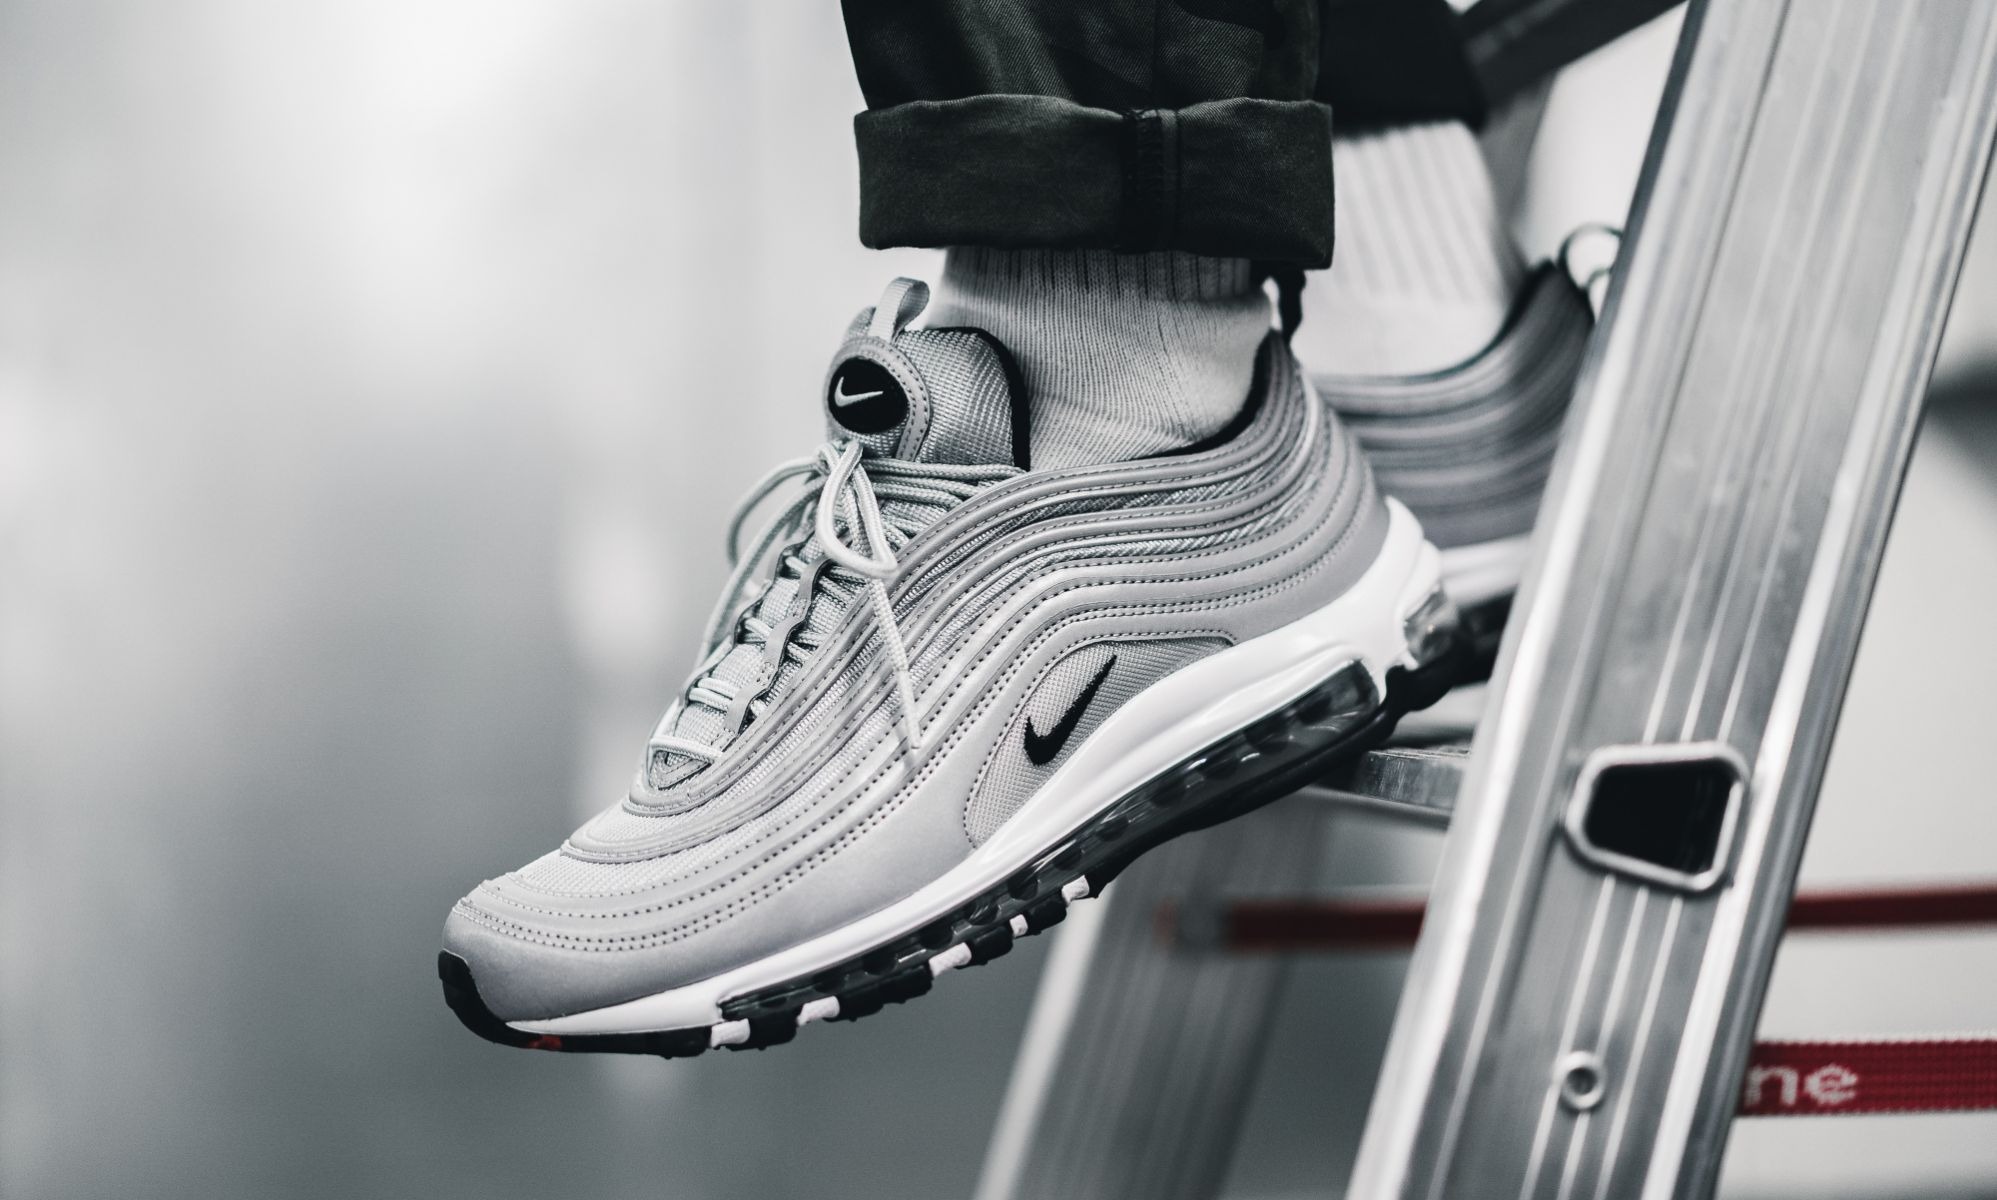 Nike Air Max 97 Reflective Silver | HYPEBEAST